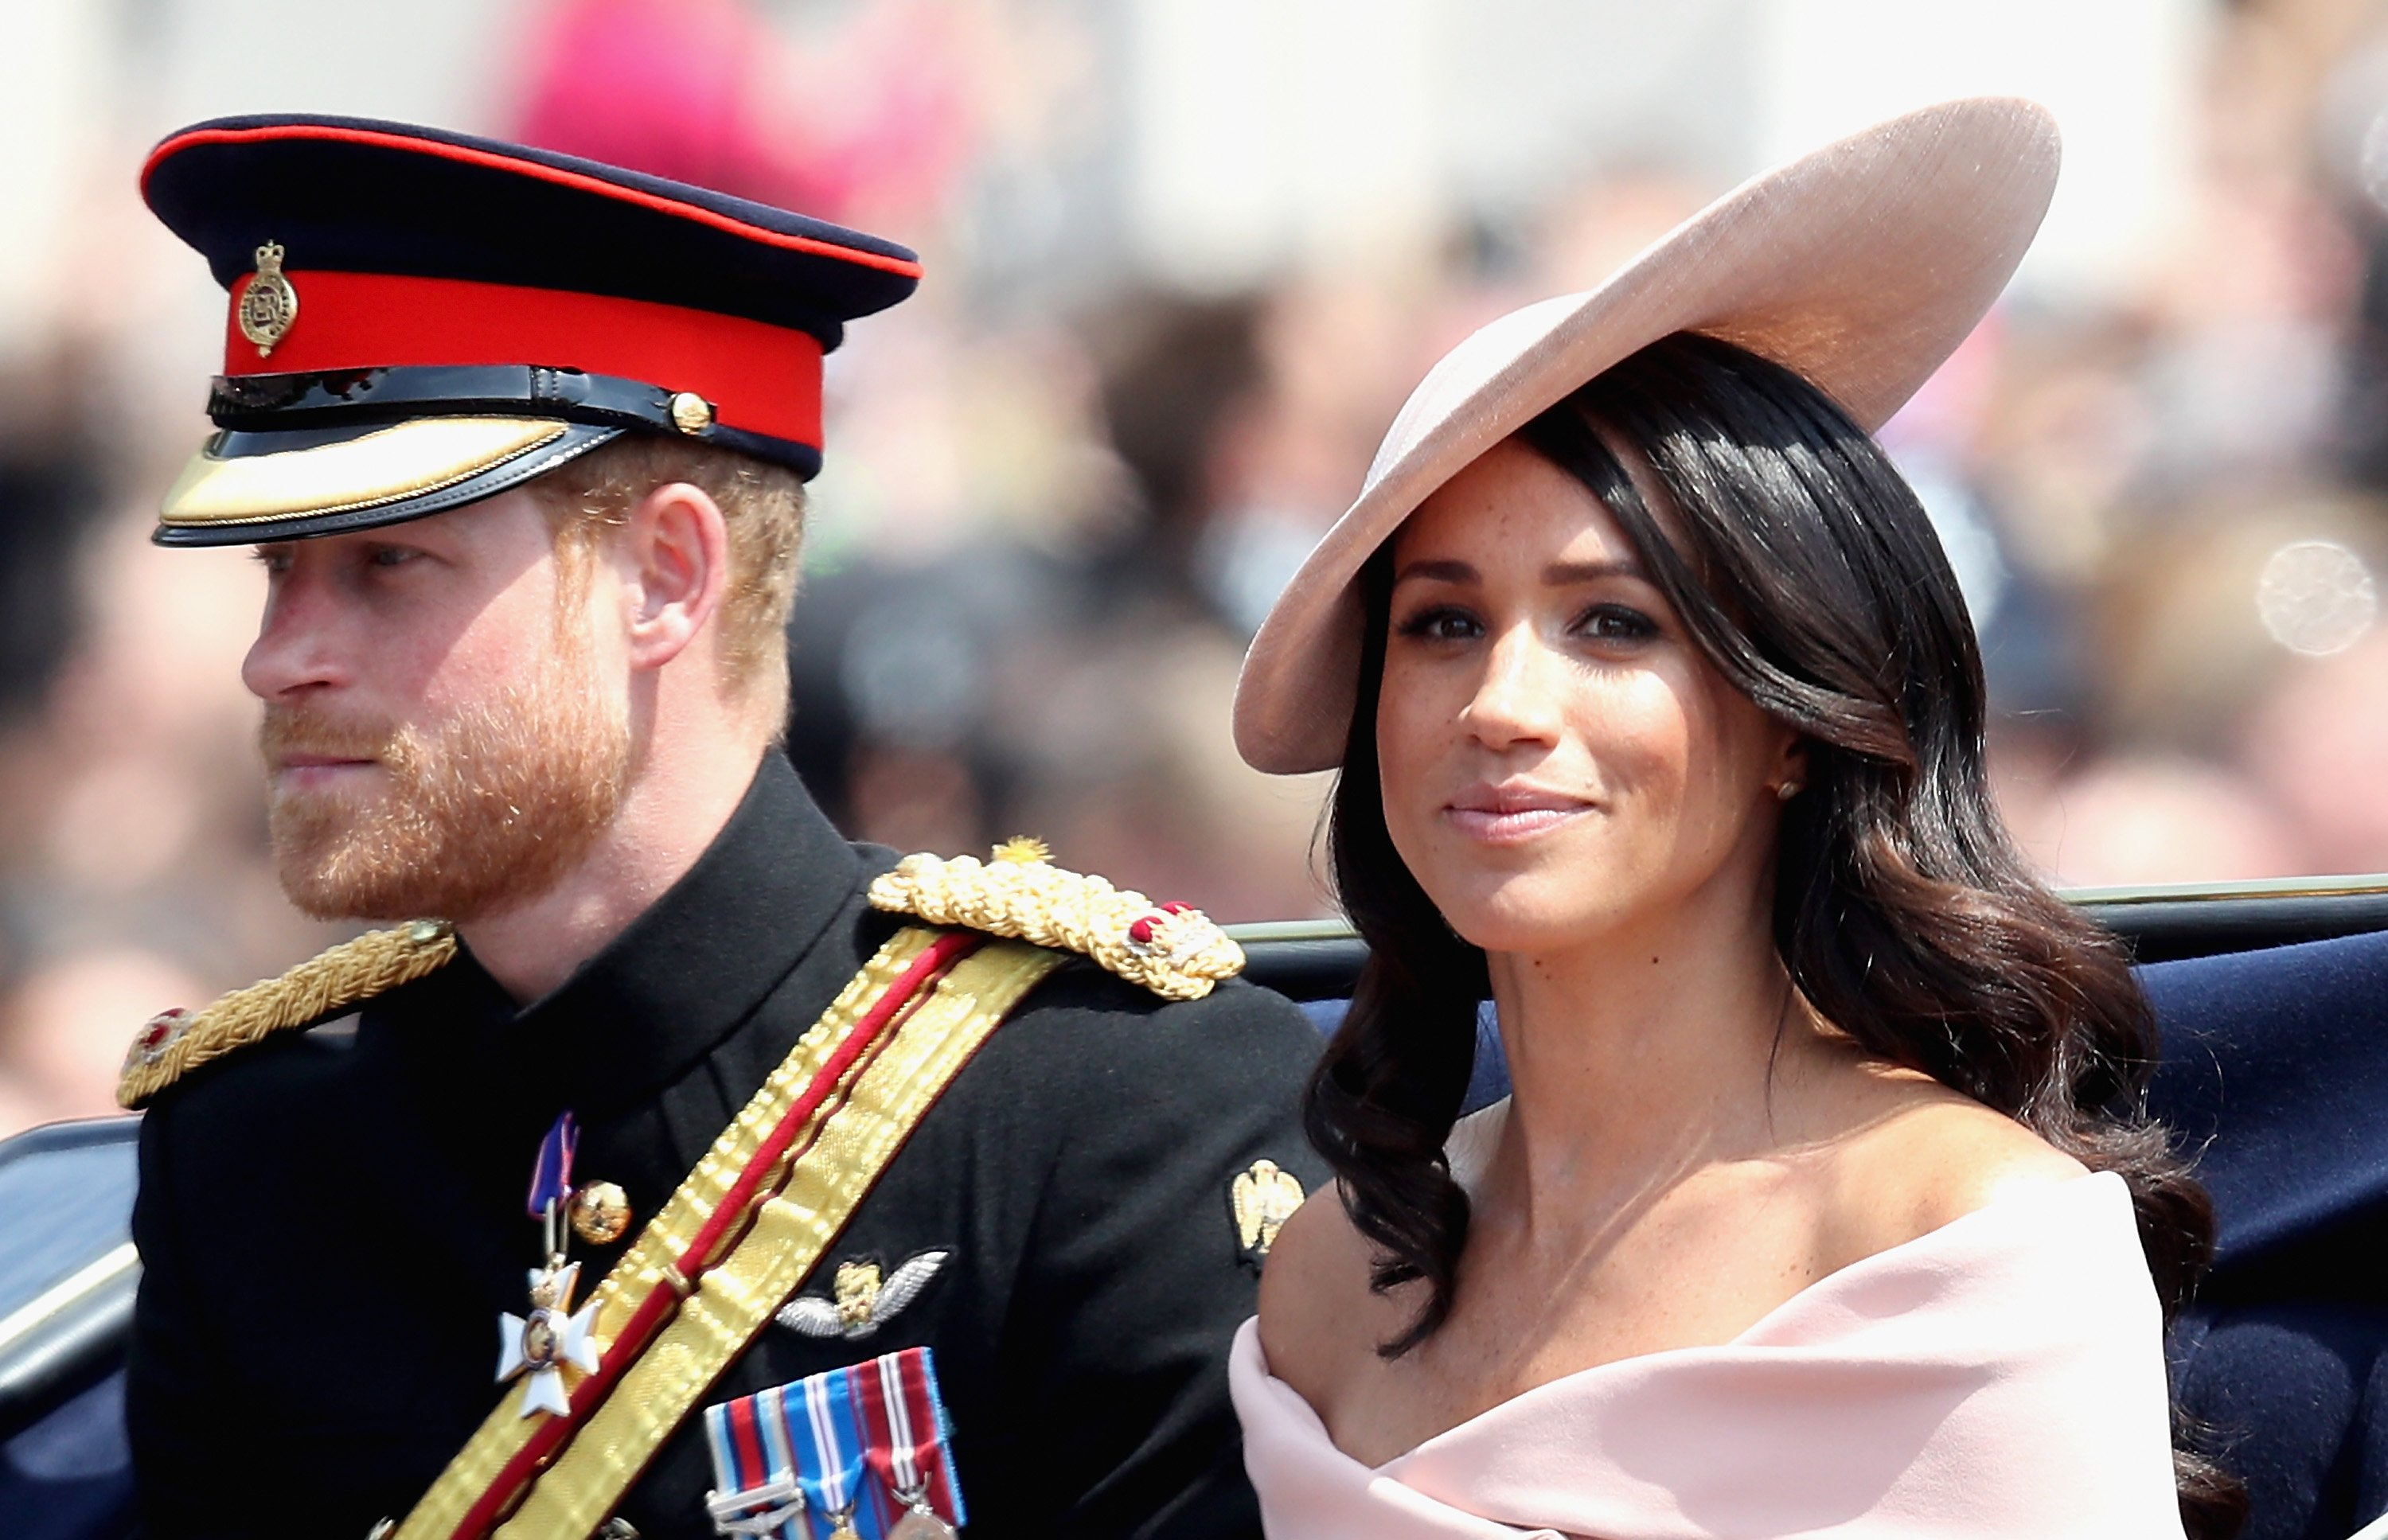 Prince Harry and Meghan Markle during Trooping The Colour on the Mall on June 9, 2018 in London, England   Photo: Getty Images